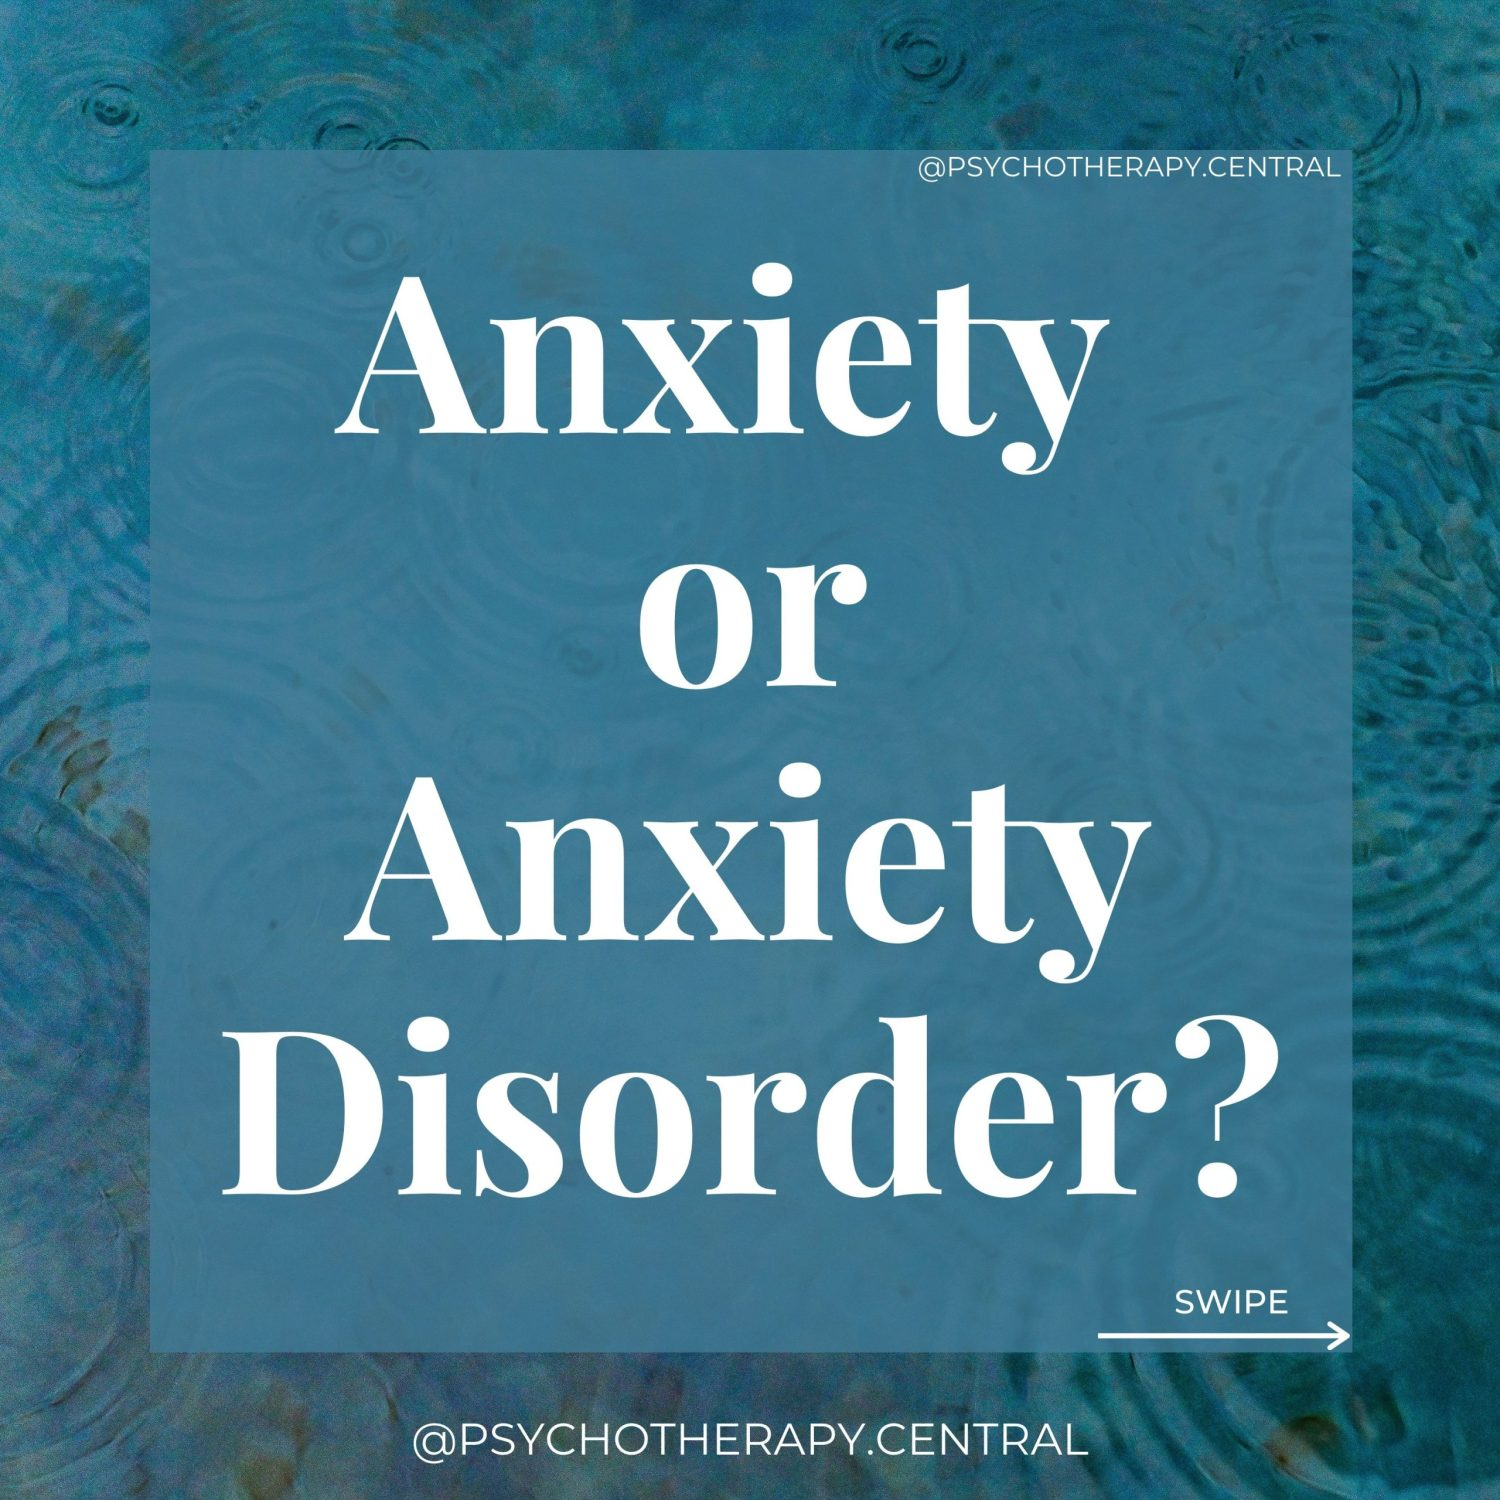 Anxiety or Anxiety Disorder? 'Normal' anxiety is a response to a specific issue, like a deadline | Anxious most of the time often, sometimes with no cause Only lasts as long as the issue, it has a start and endpoint | Intense emotional responses which can last for months Anxiety is proportional to the issue | The response can be much stronger than you would expect Can help to get things done | Interferes with life satisfaction, you may start avoiding places or people that trigger the anxiety | Physical symptoms, dizziness, nausea, trembling, racing heart, restricted breathing, difficulty concentrating Time out will often help the anxiety | The anxiety may feel impossible to manage